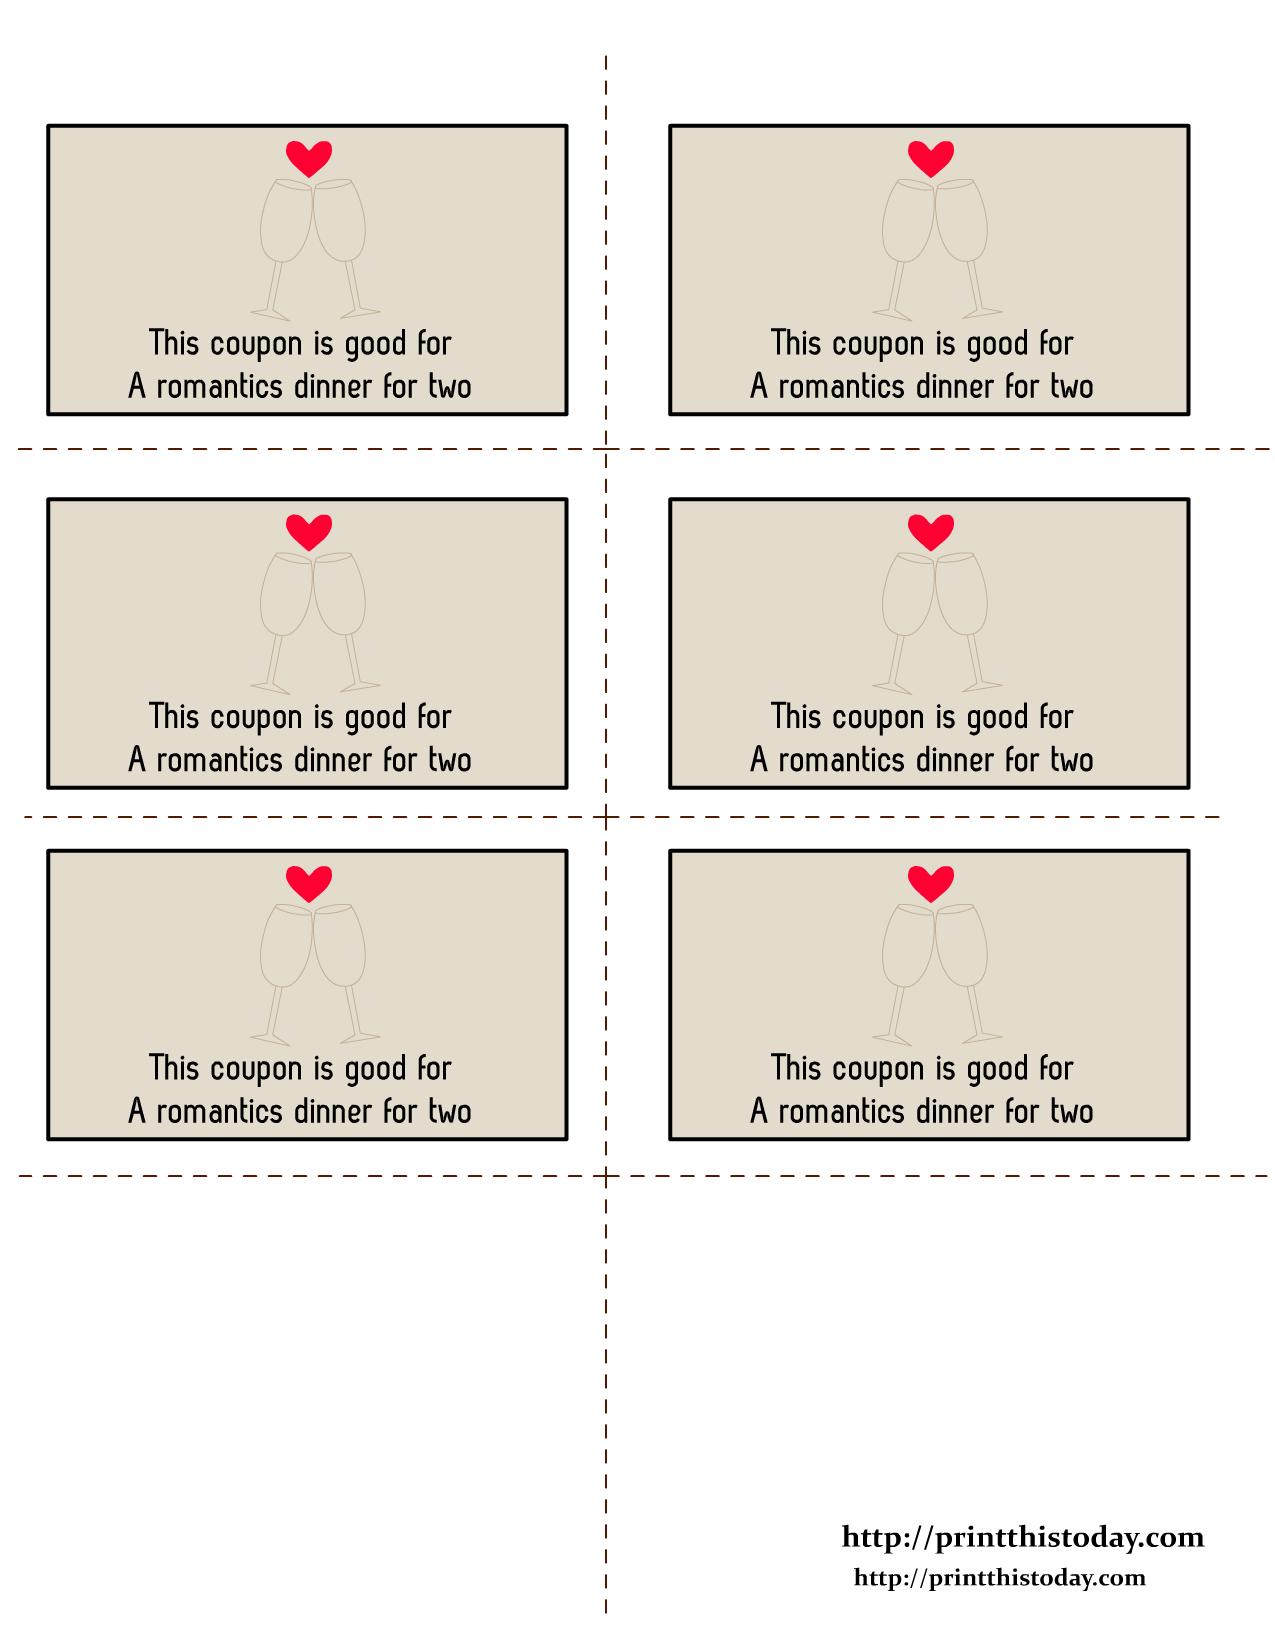 Free Printable Love Coupons - Free Printable Love Coupons For Wife